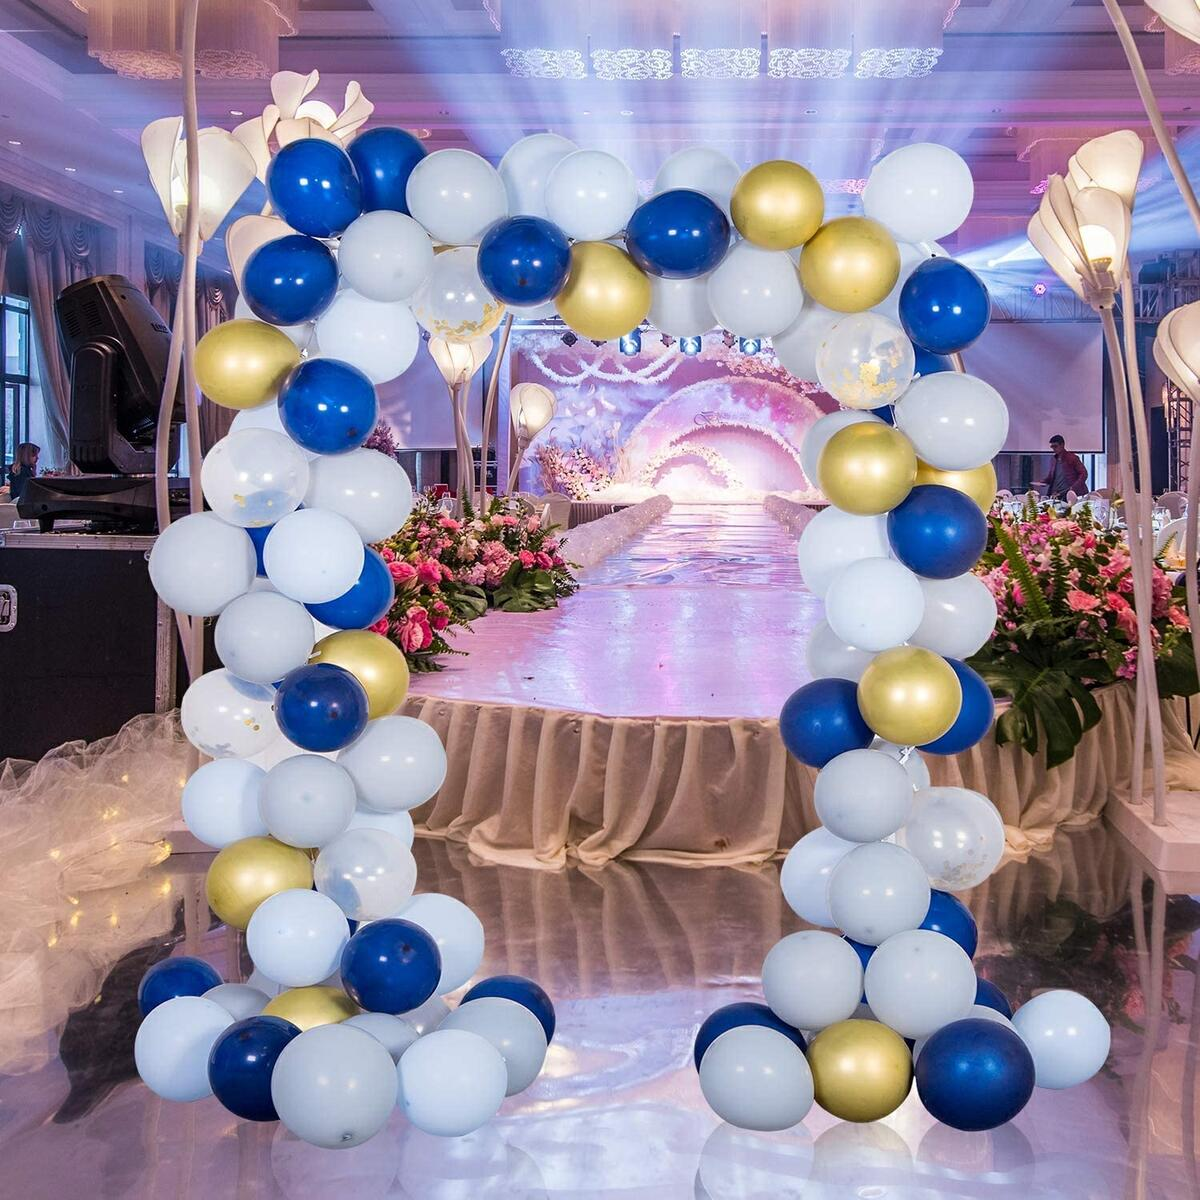 Flying Banana Navy Blue Balloon Garland Arch Kit With Pump-101pcs Latex Gold Confetti White Macaron Blue Gray And Gold Balloons For Wedding Bridal & Baby Shower Birthday,Anniversary Graduation Party